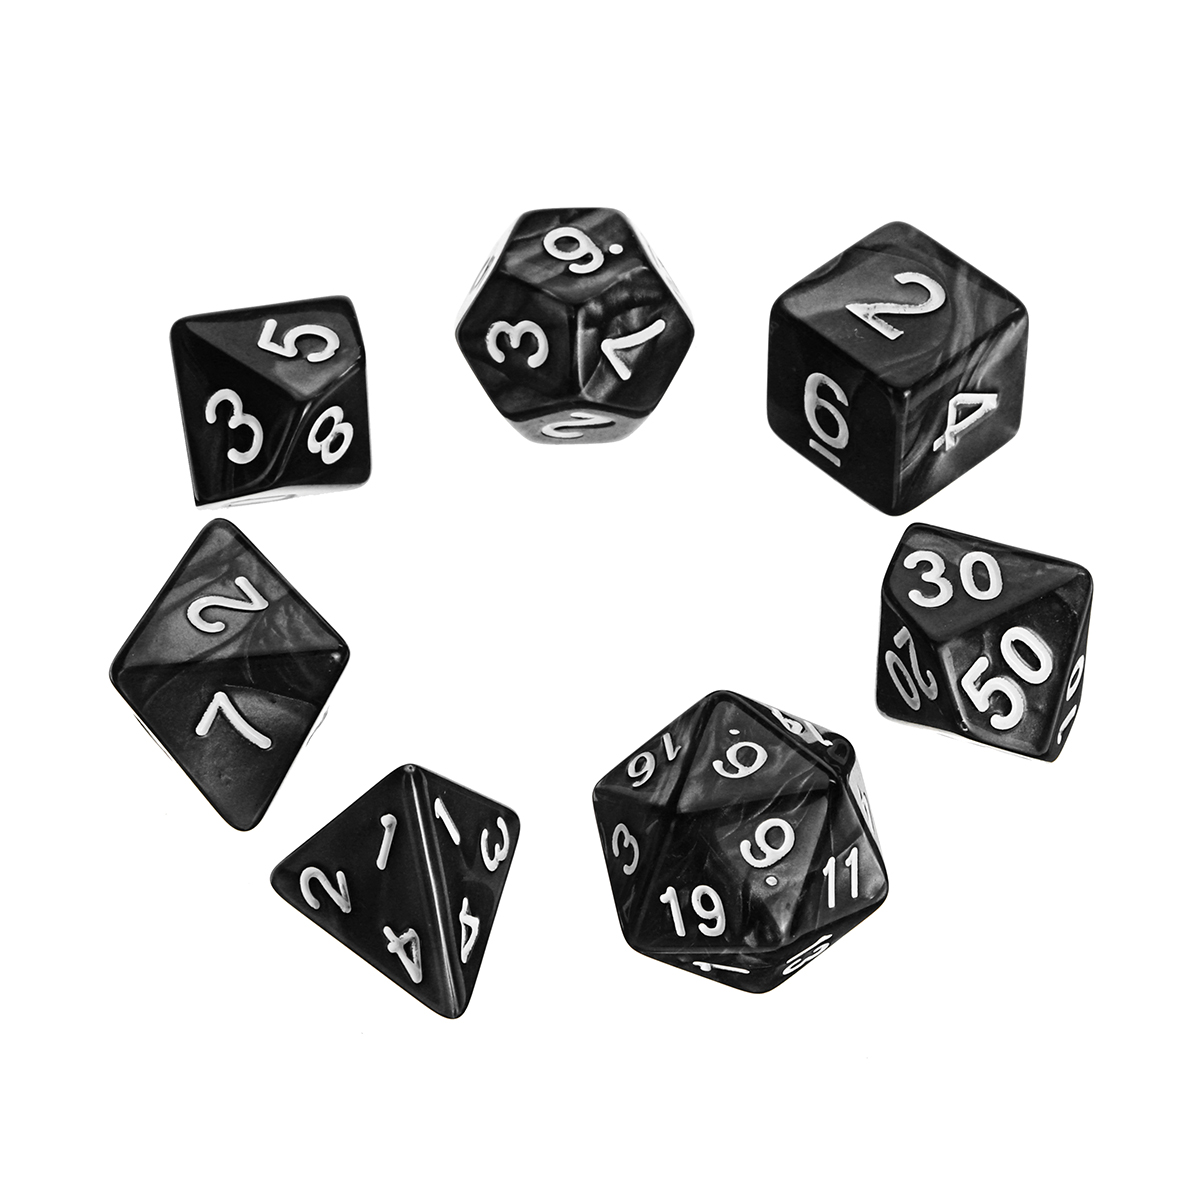 Portable Fold Dice Tray PU Leather with 7 Polyhedral Dice for Tabletop Dice Games